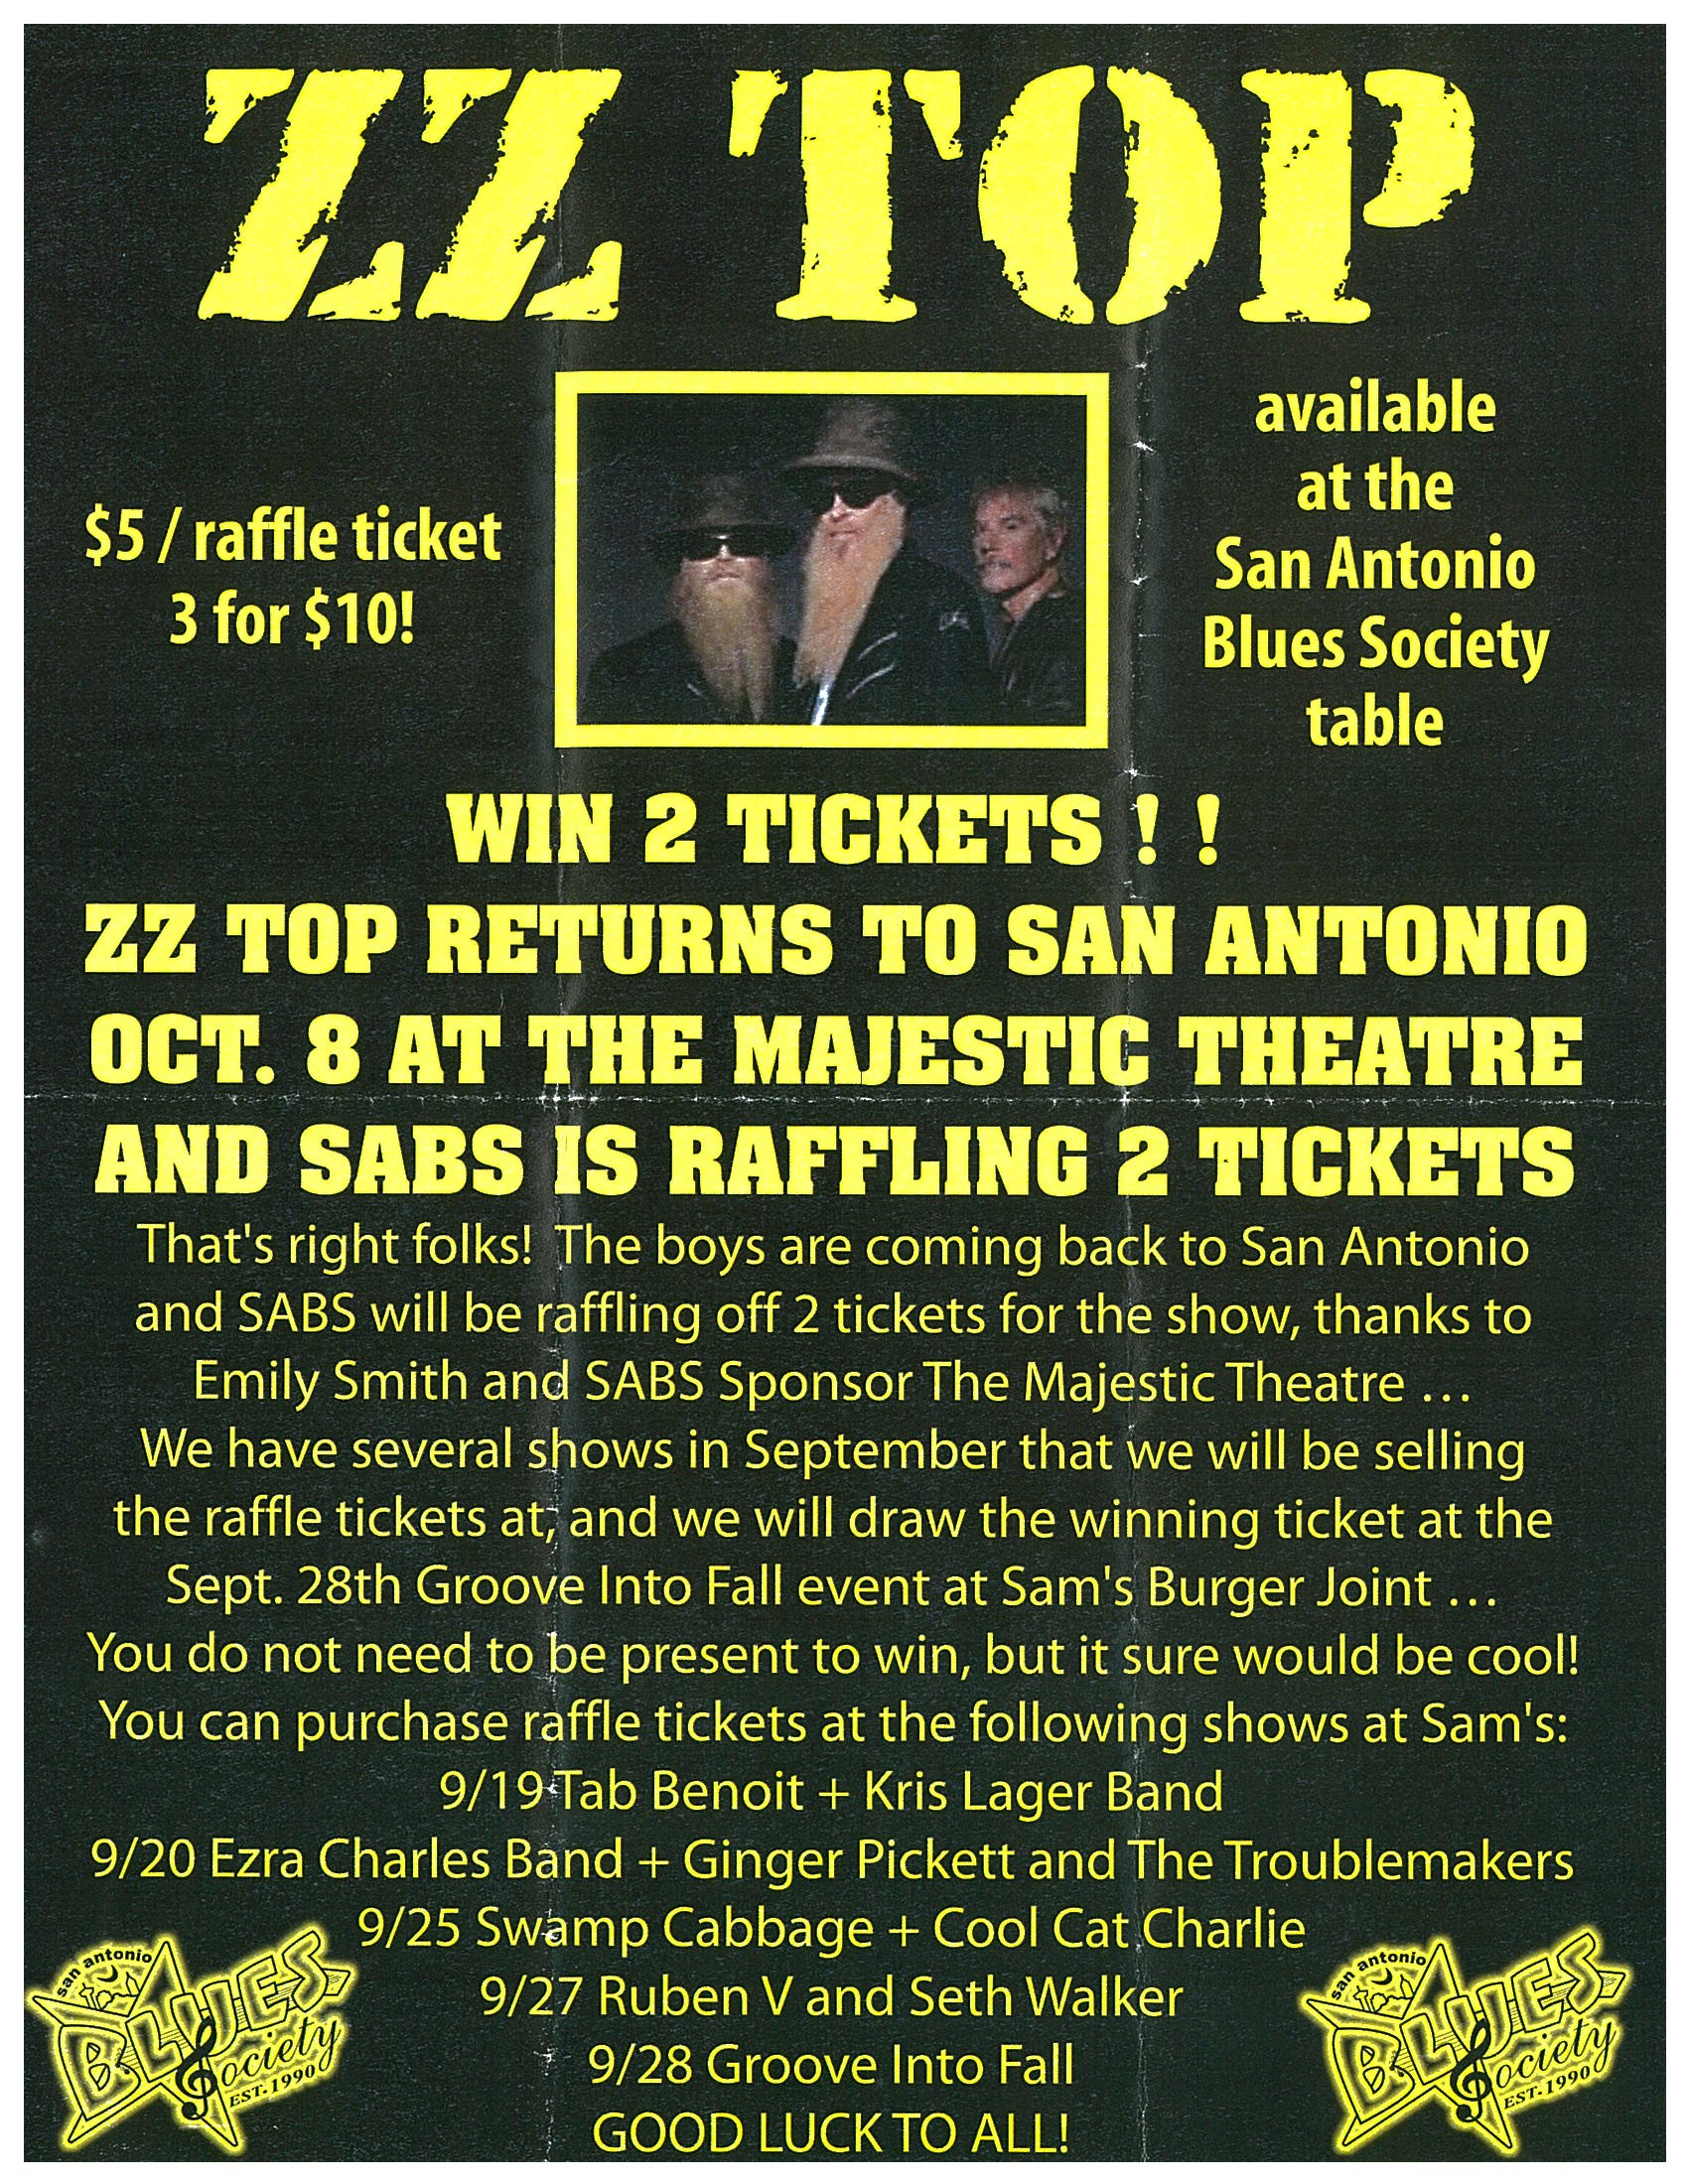 That little old band from Texas opened for Janis Joplin in 1969. They're still around. ZZ Top will perform at the Majestic Theater on October 8.